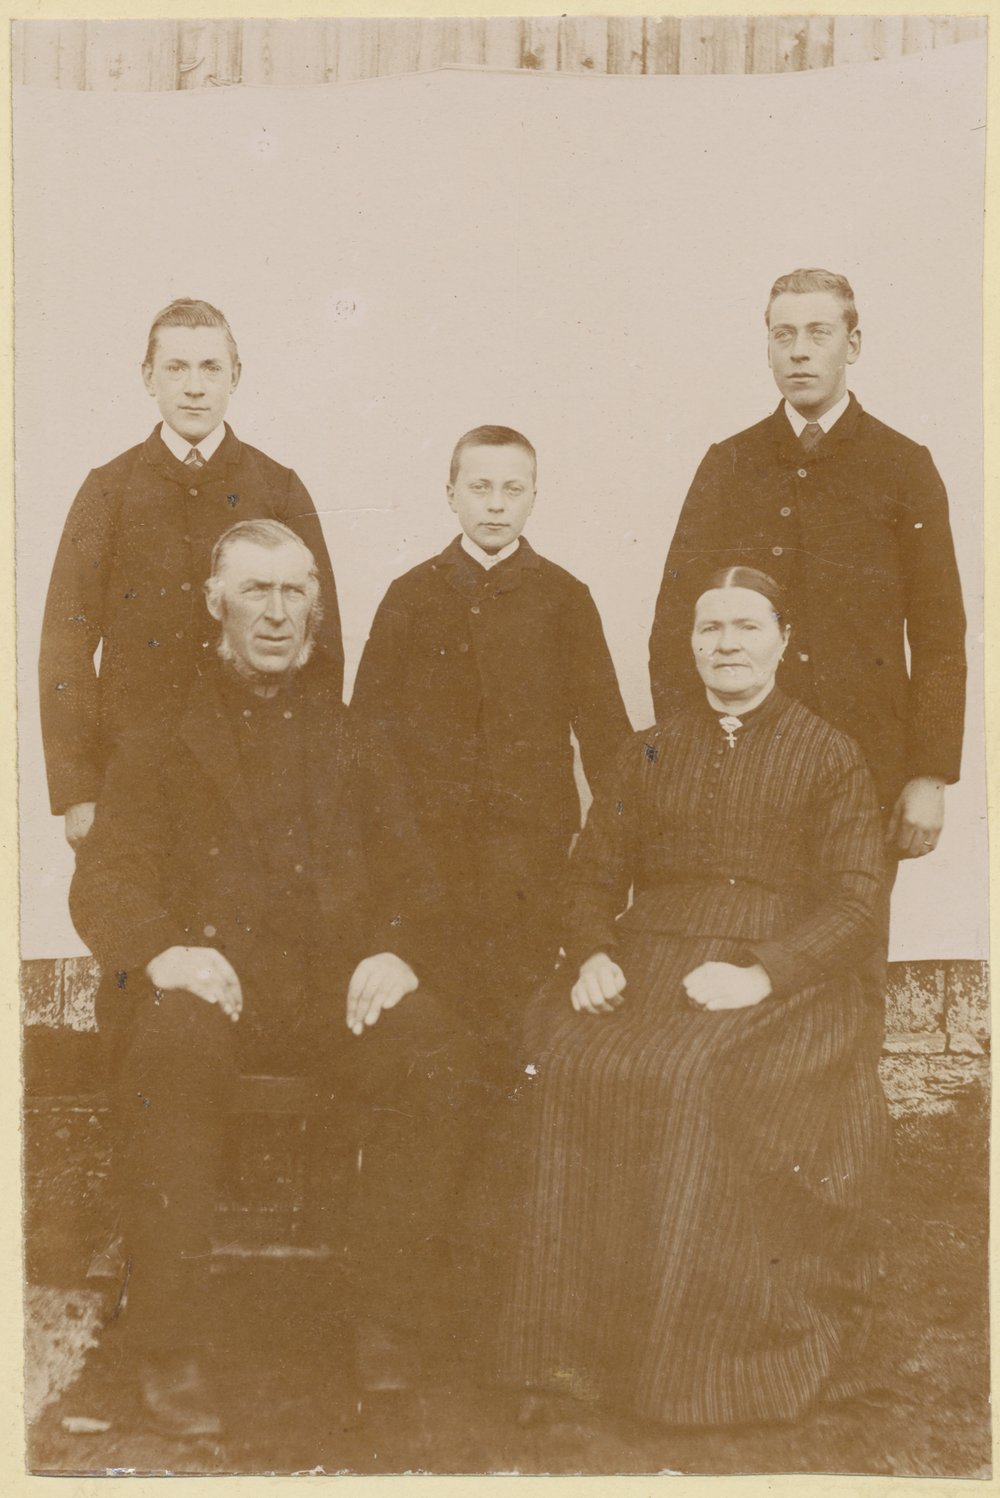 Generius (1841-1929) and Sofie (1846-1925) with their sons Ellef, Severin and Nils (the one who took over the farm).